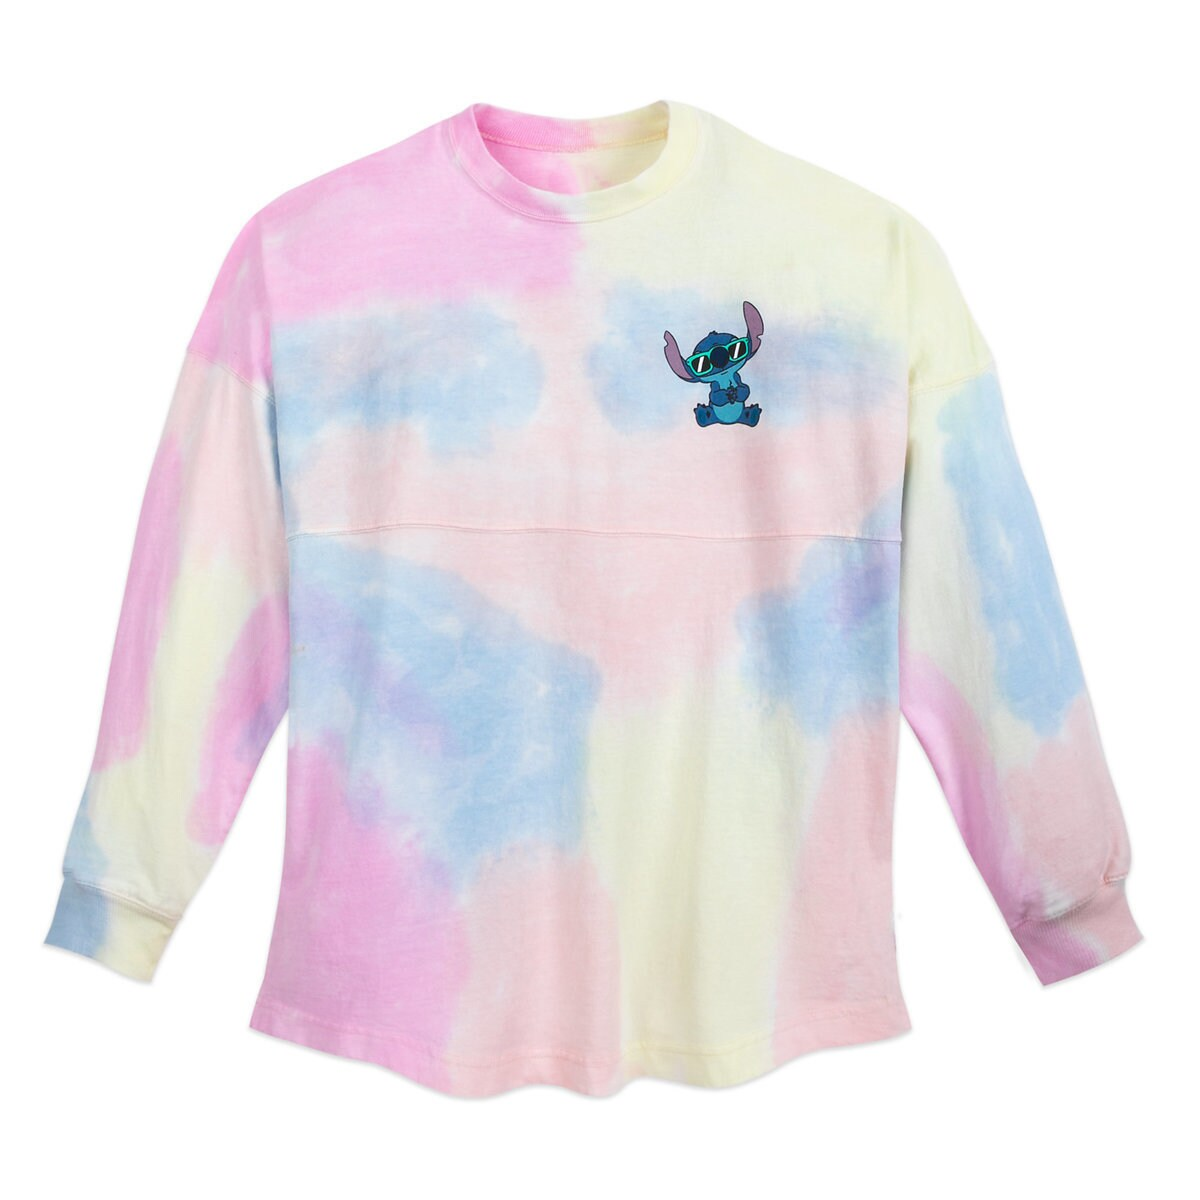 07df1e92025f Product Image of Stitch Tie-Dye Rainbow Spirit Jersey for Adults # 1